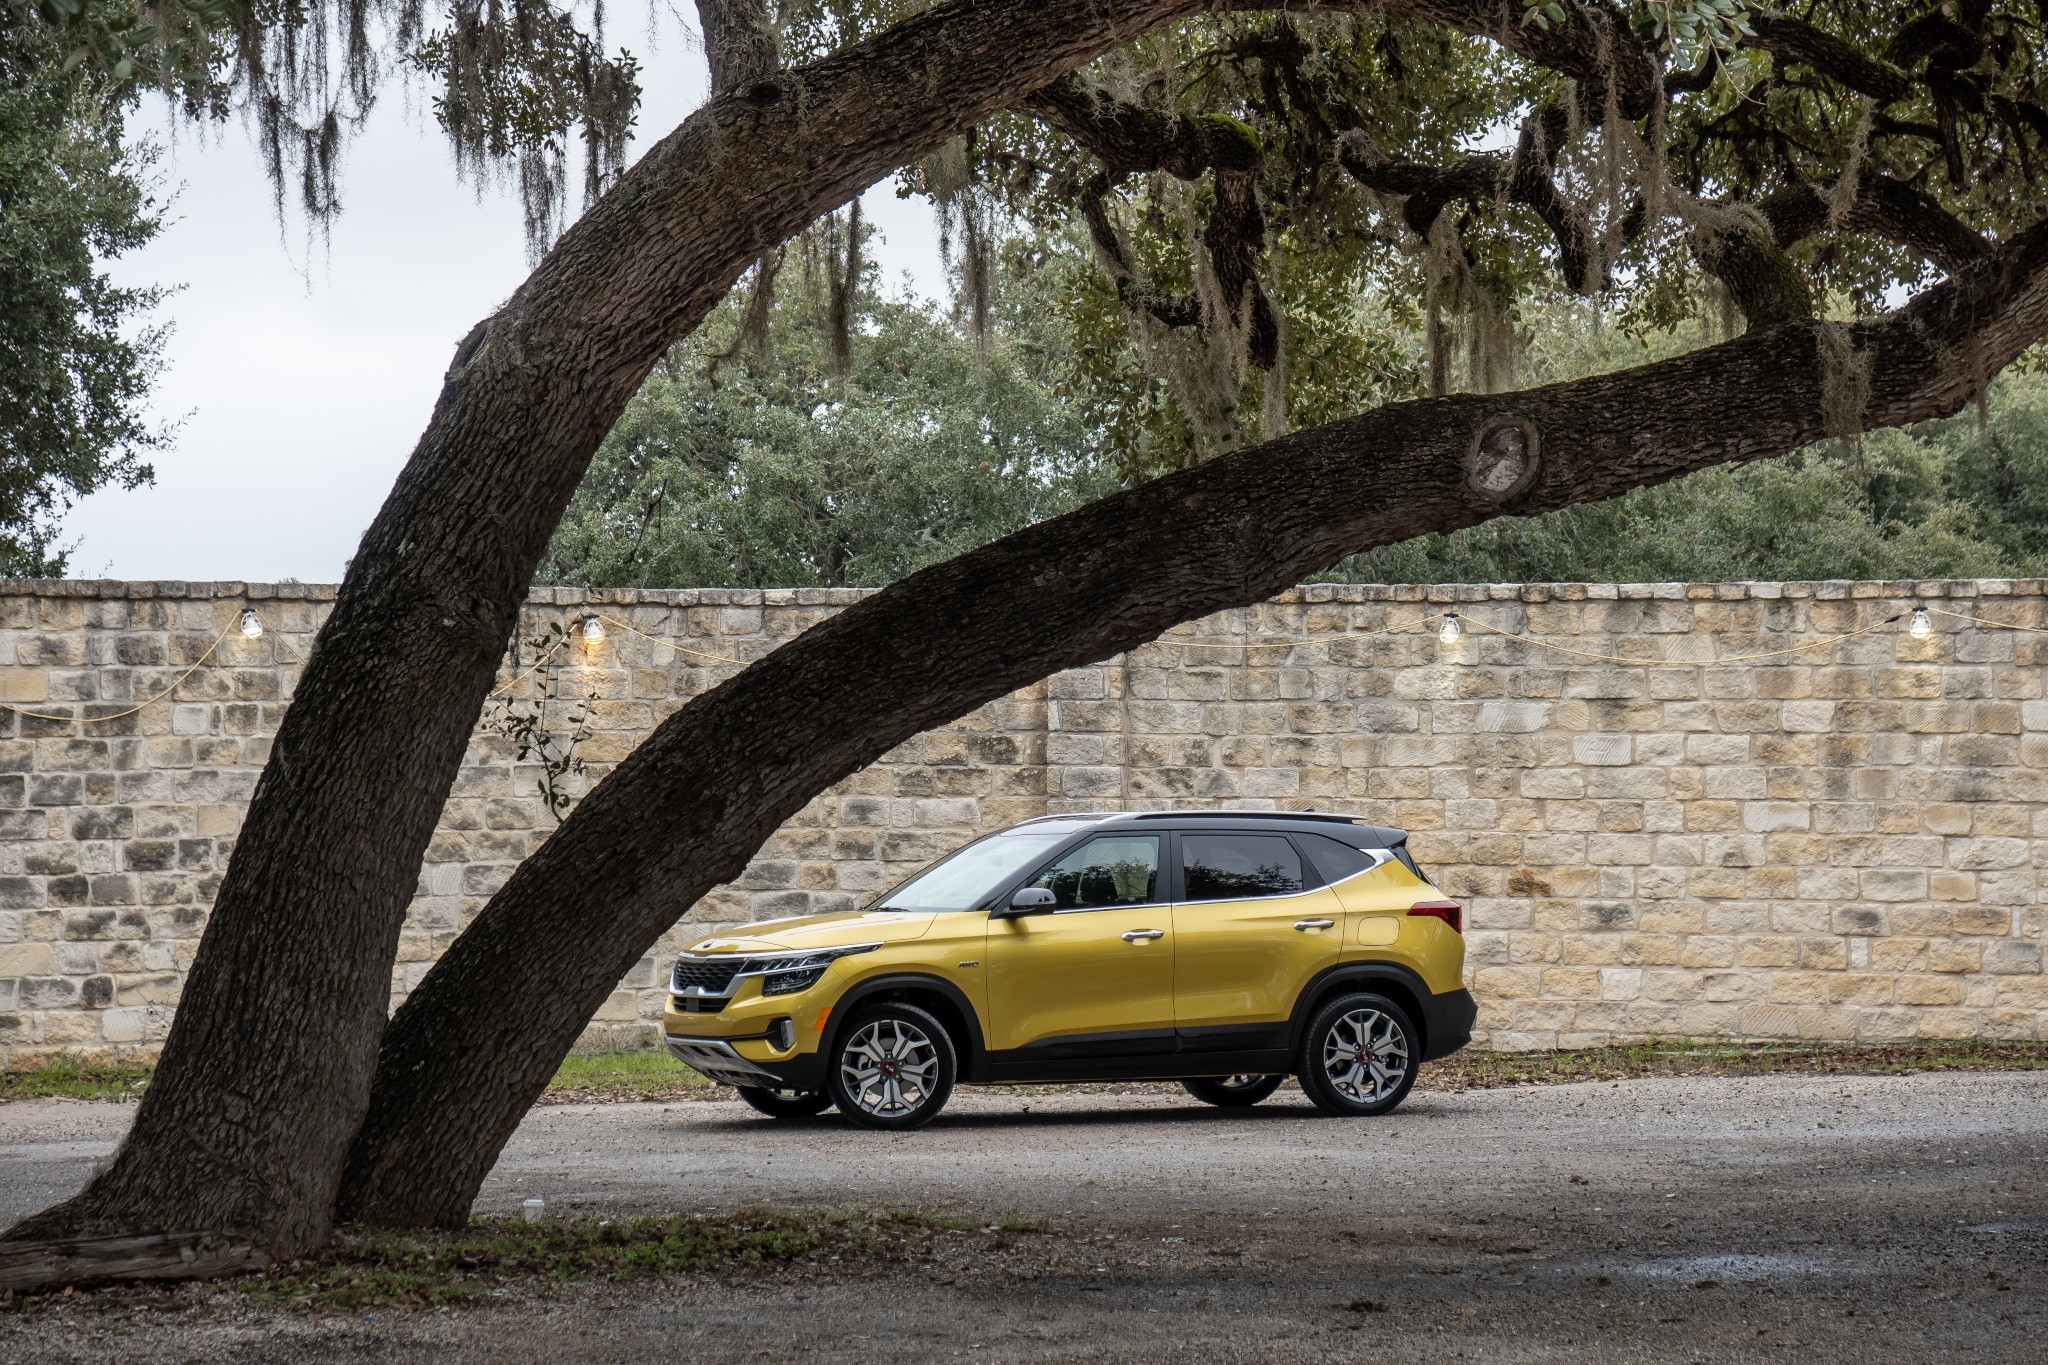 2021 Kia Seltos: Everything You Need to Know